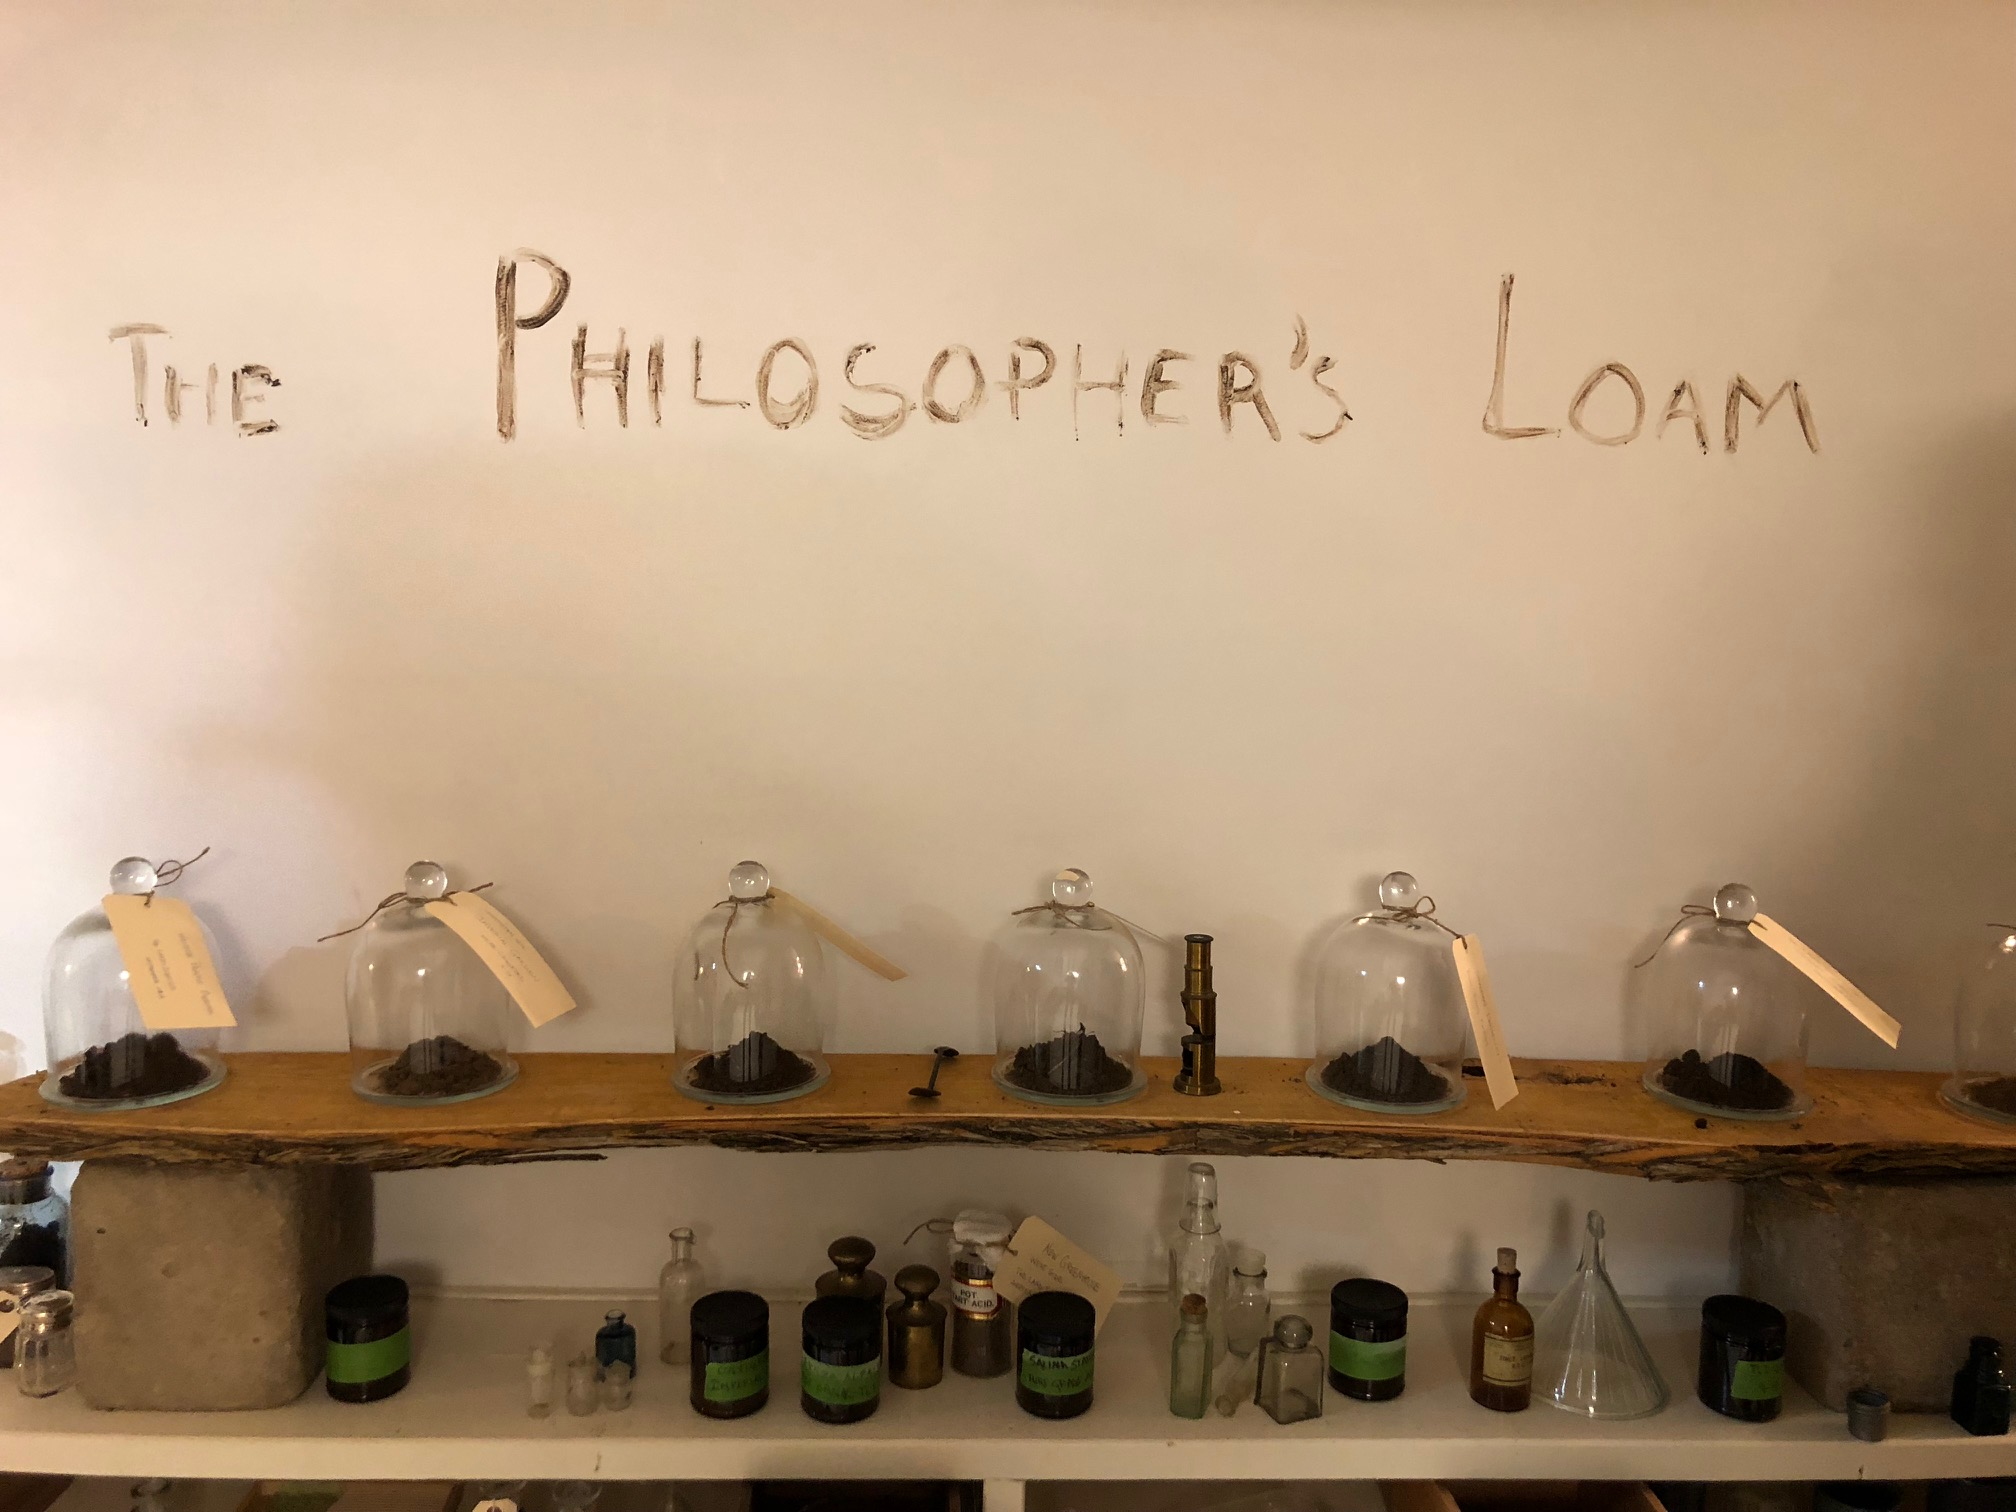 The Philosopher's Loam